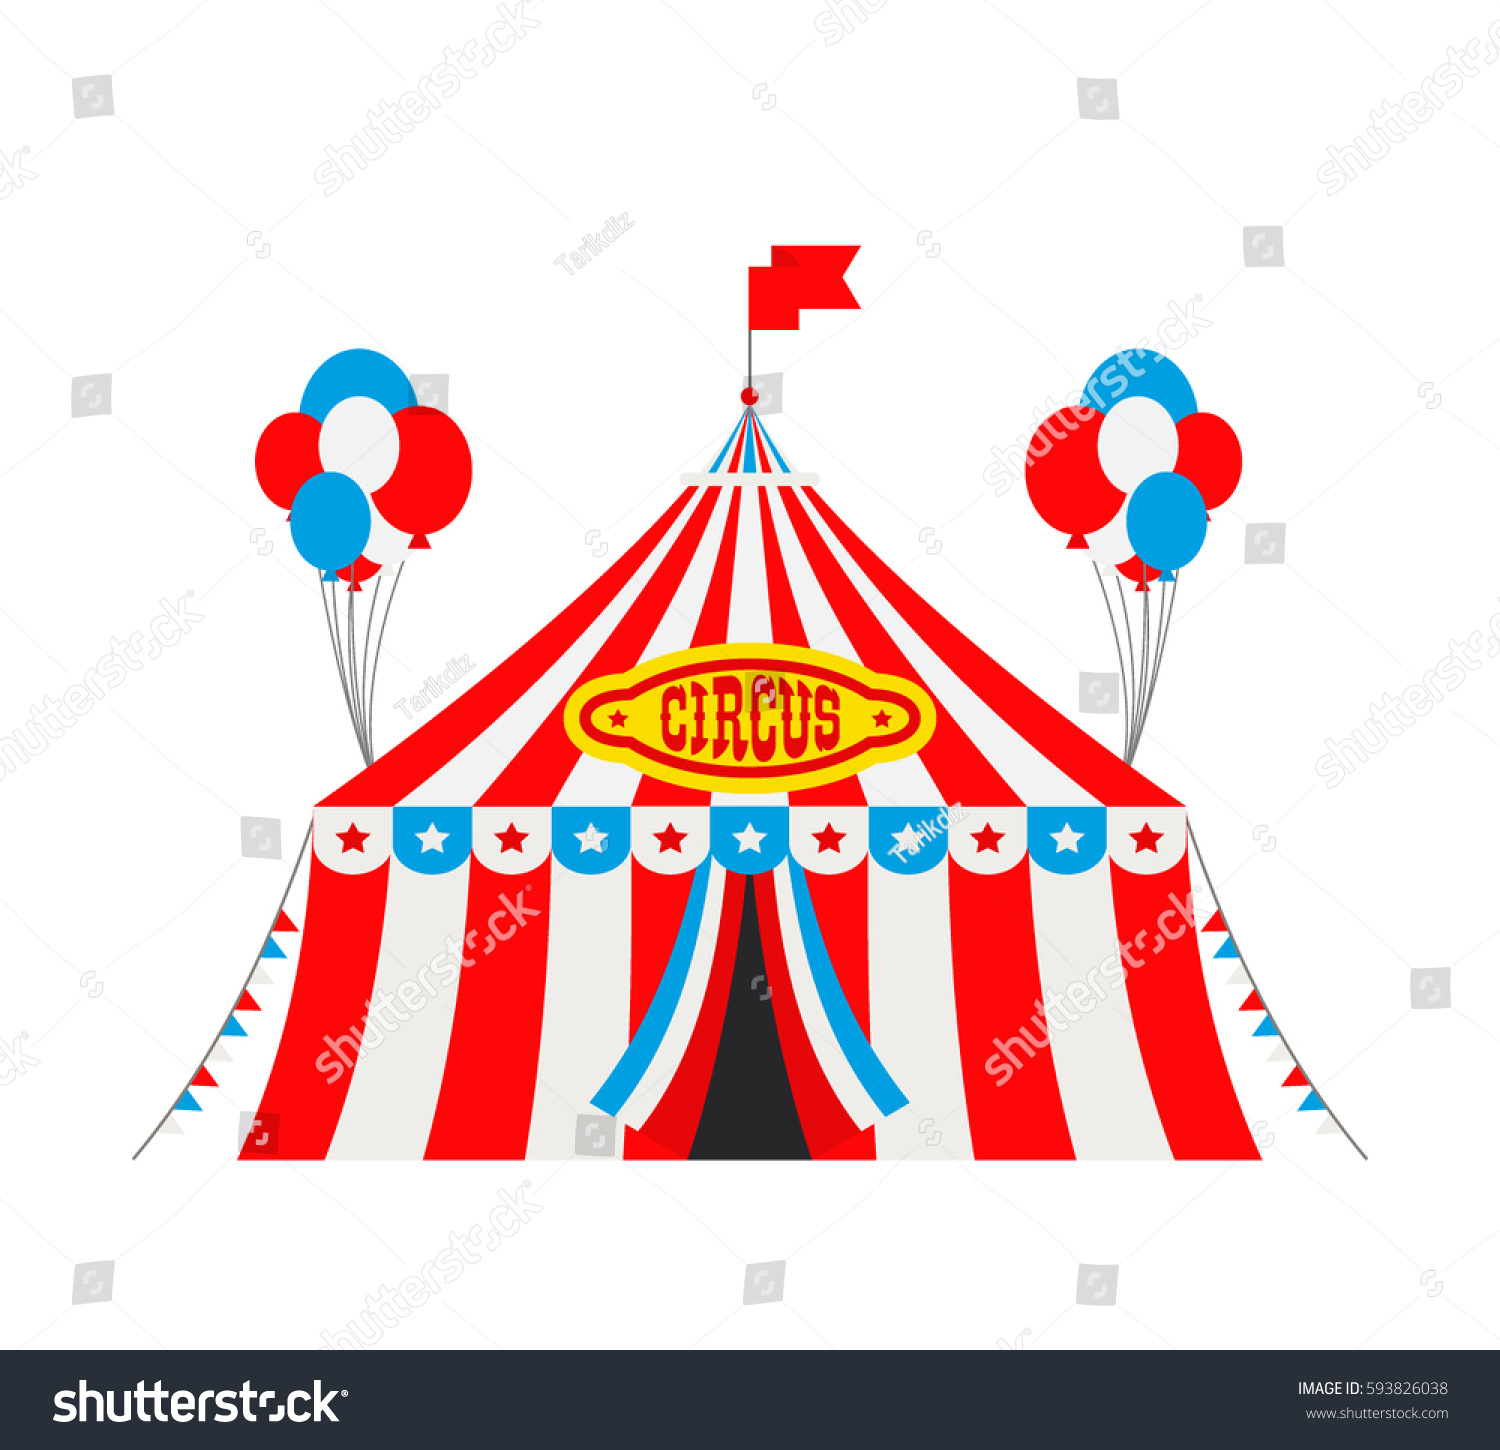 circus tent with flags and balloons on white background  sc 1 st  Shutterstock & Circus Tent Flags Balloons On White Stock Vector 593826038 ...